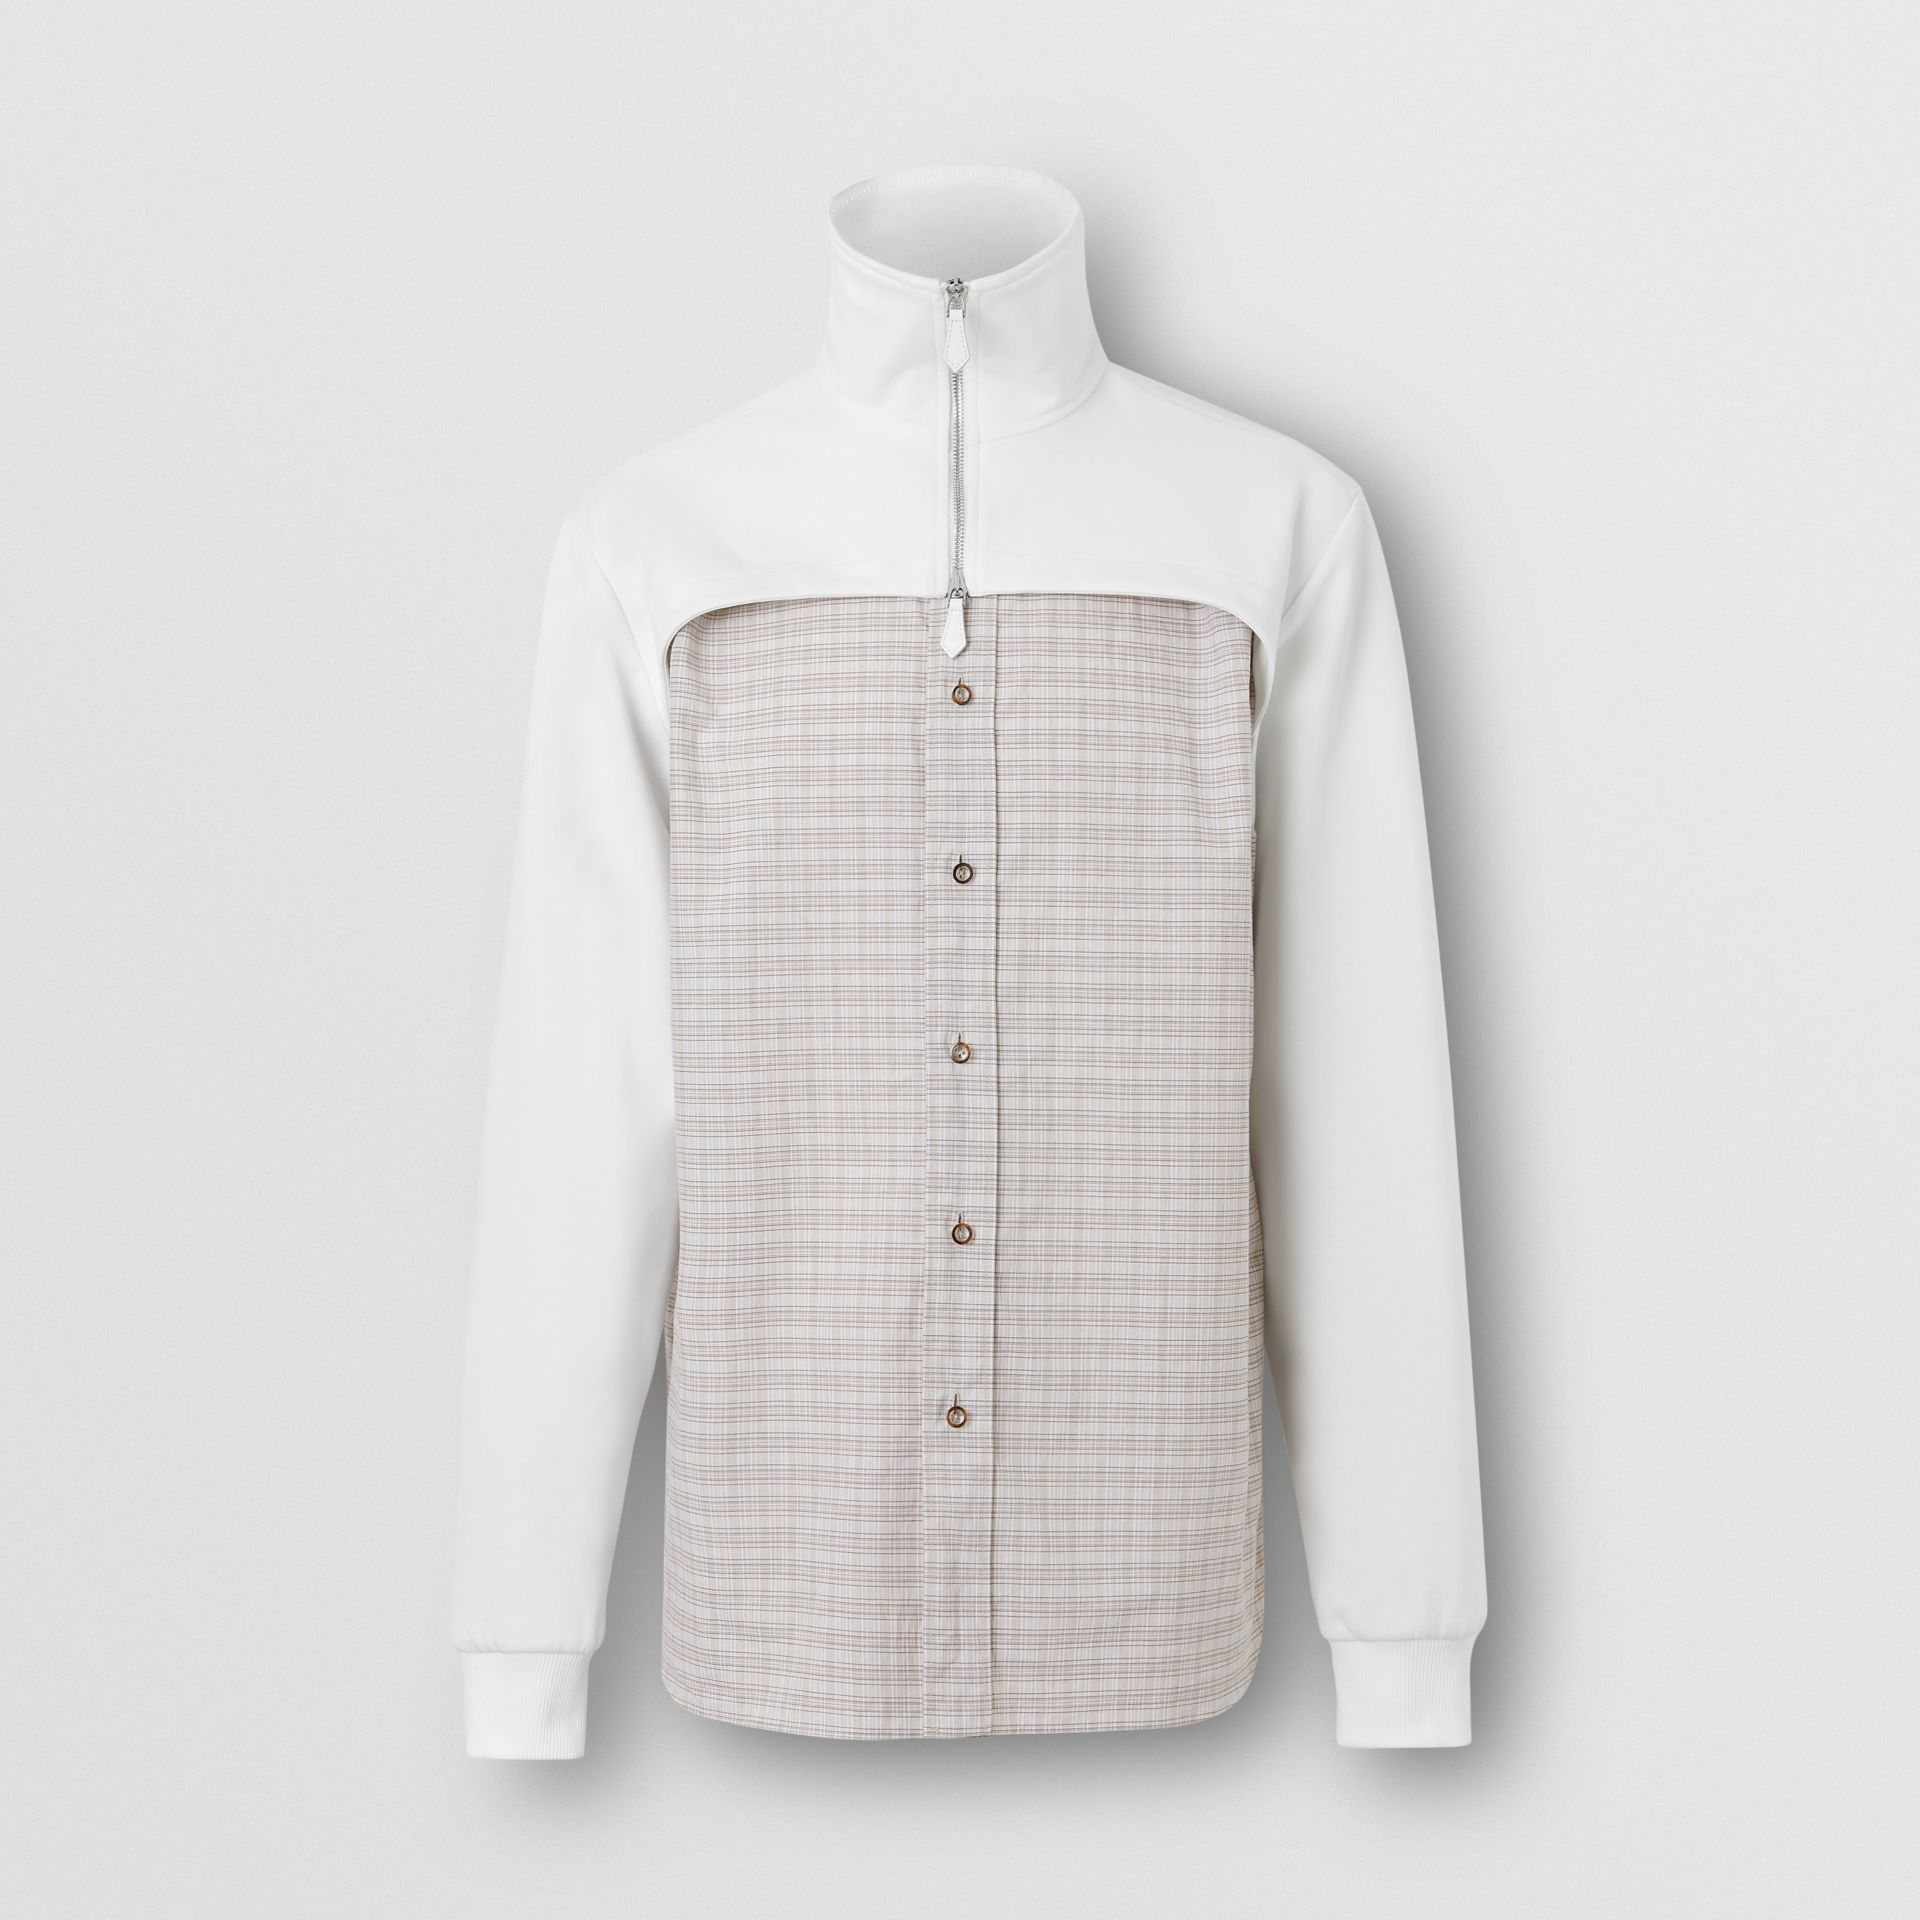 Track Top Detail Small Scale Check Cotton Shirt in Beige/natural White - Men | Burberry Hong Kong S.A.R - gallery image 3